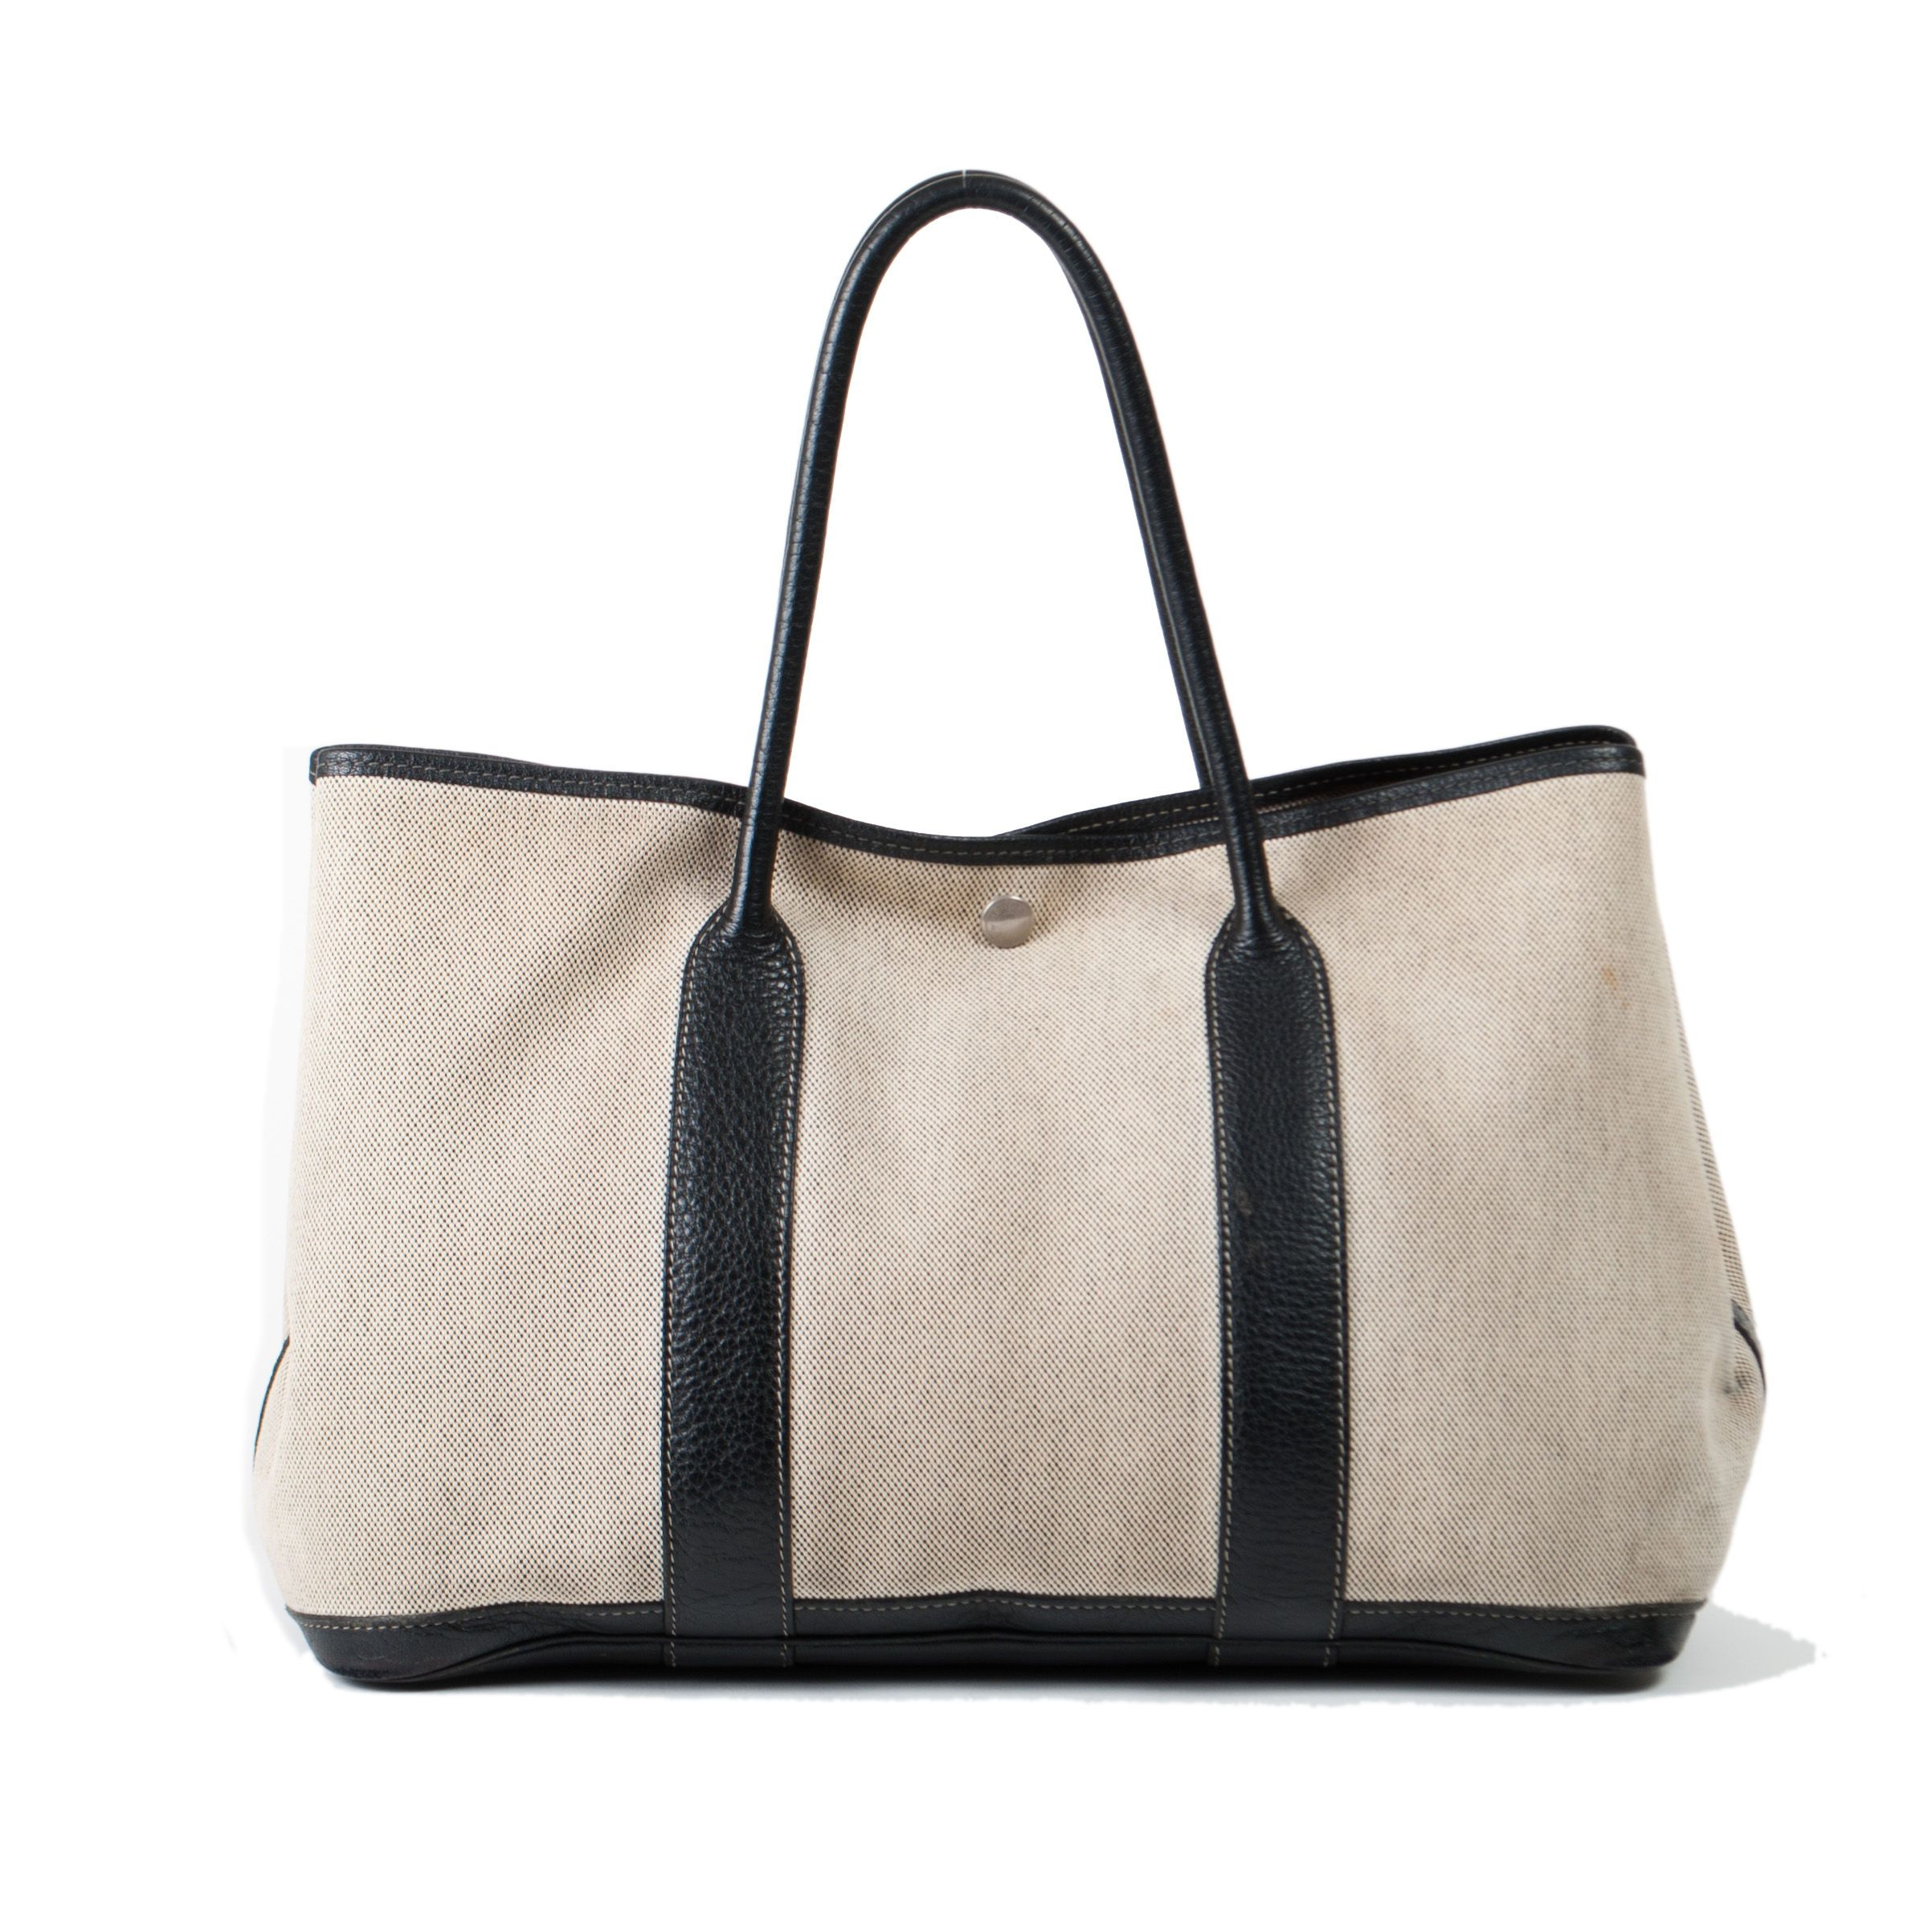 #Hermès two tone cotton #Garden #Party #PM handbag with leather trim. Available at lxrco.com for $499